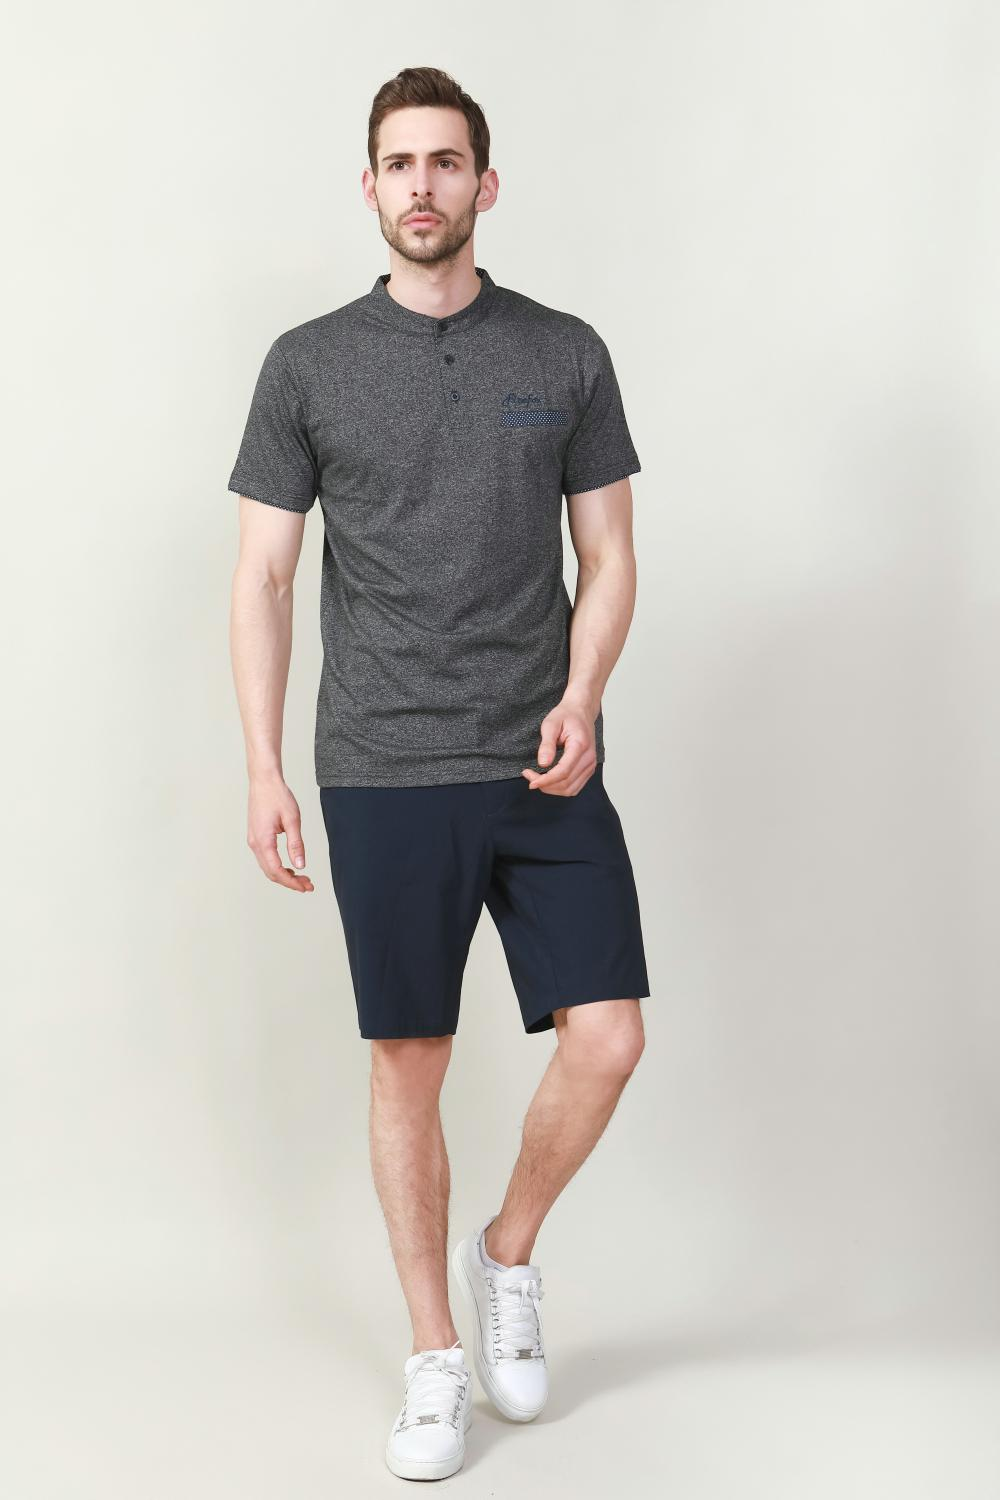 Men's casual short